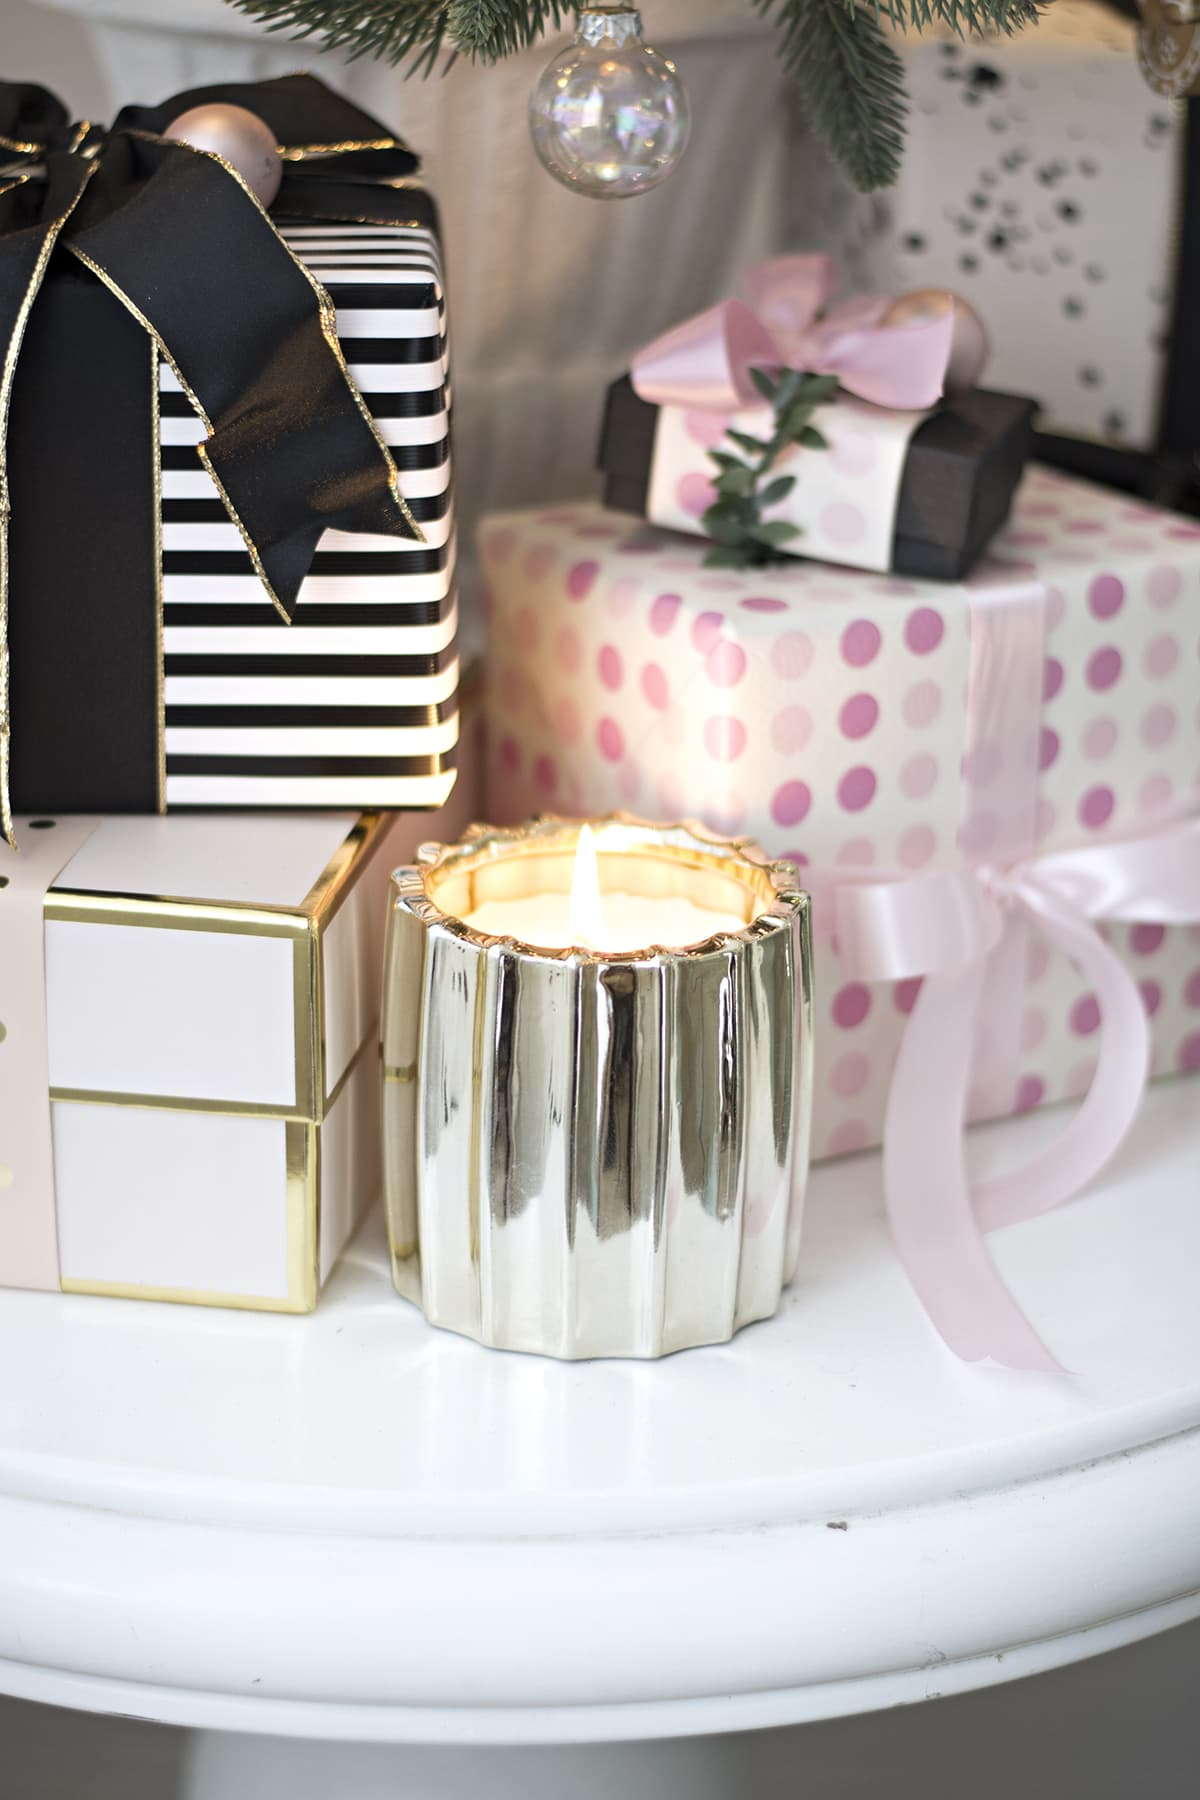 faux wrapped gifts as Christmas decor